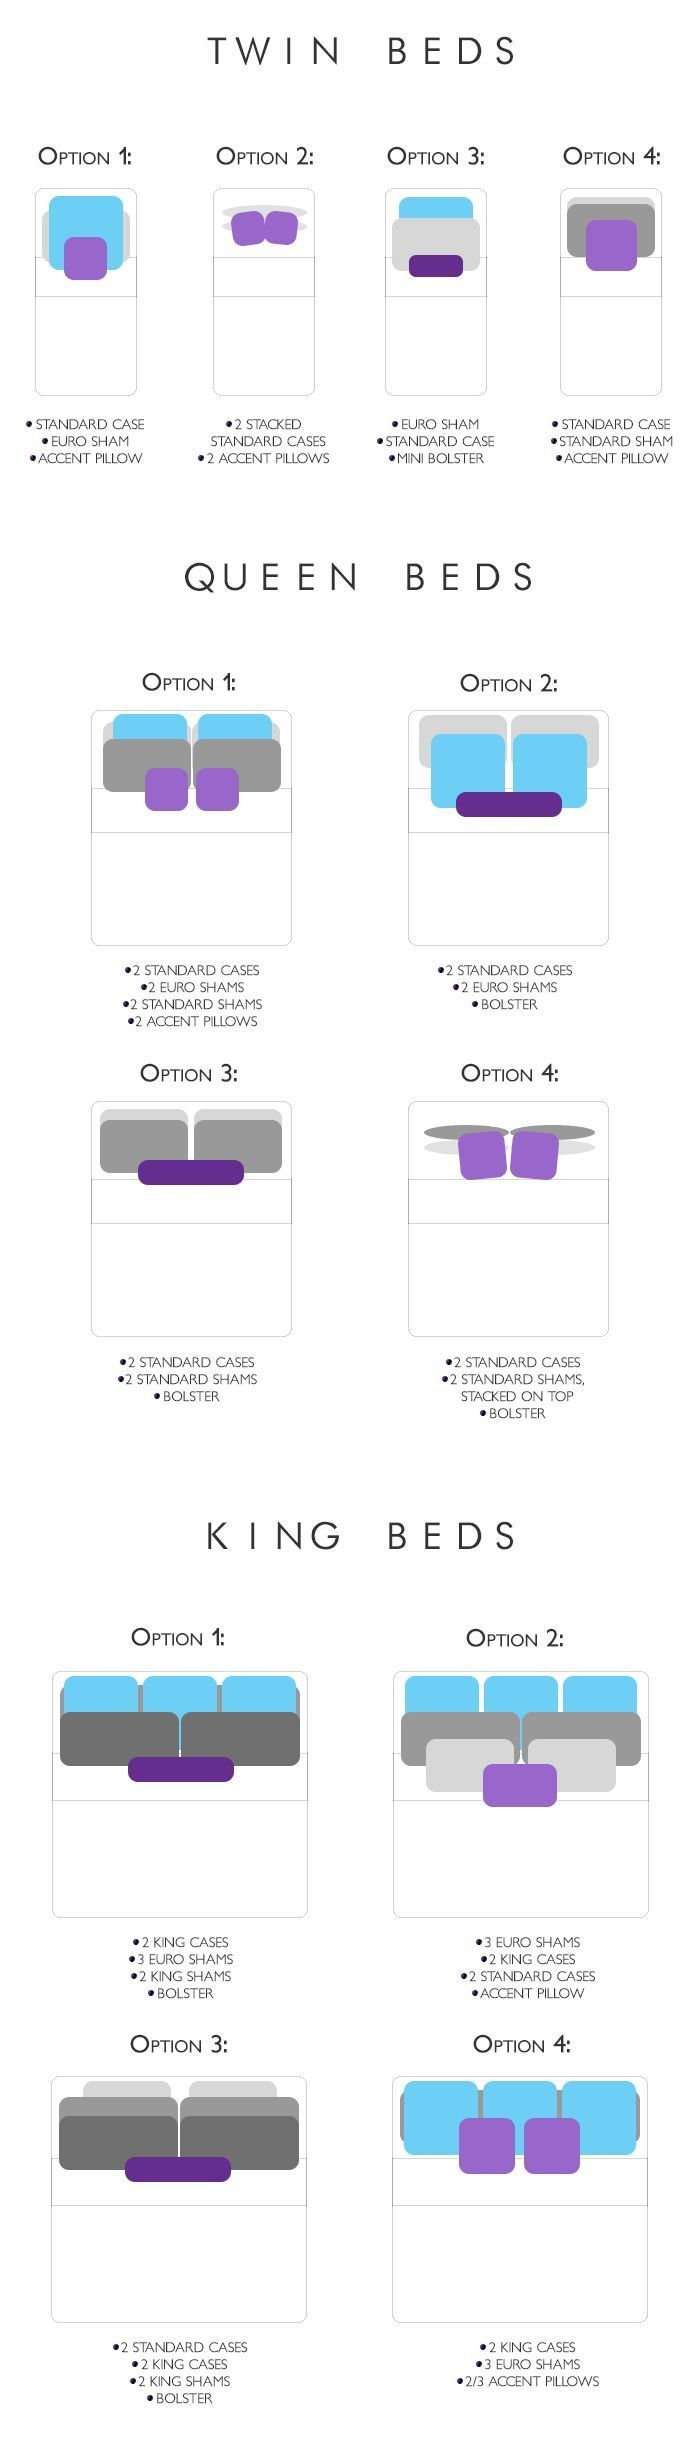 We often get questions from clients and customers about different ways to dress a bed, so, in the next couple of weeks, we'll be exploring some different options for bedding arrangements! This week's theme: pillow placement. Let's start off by sayin